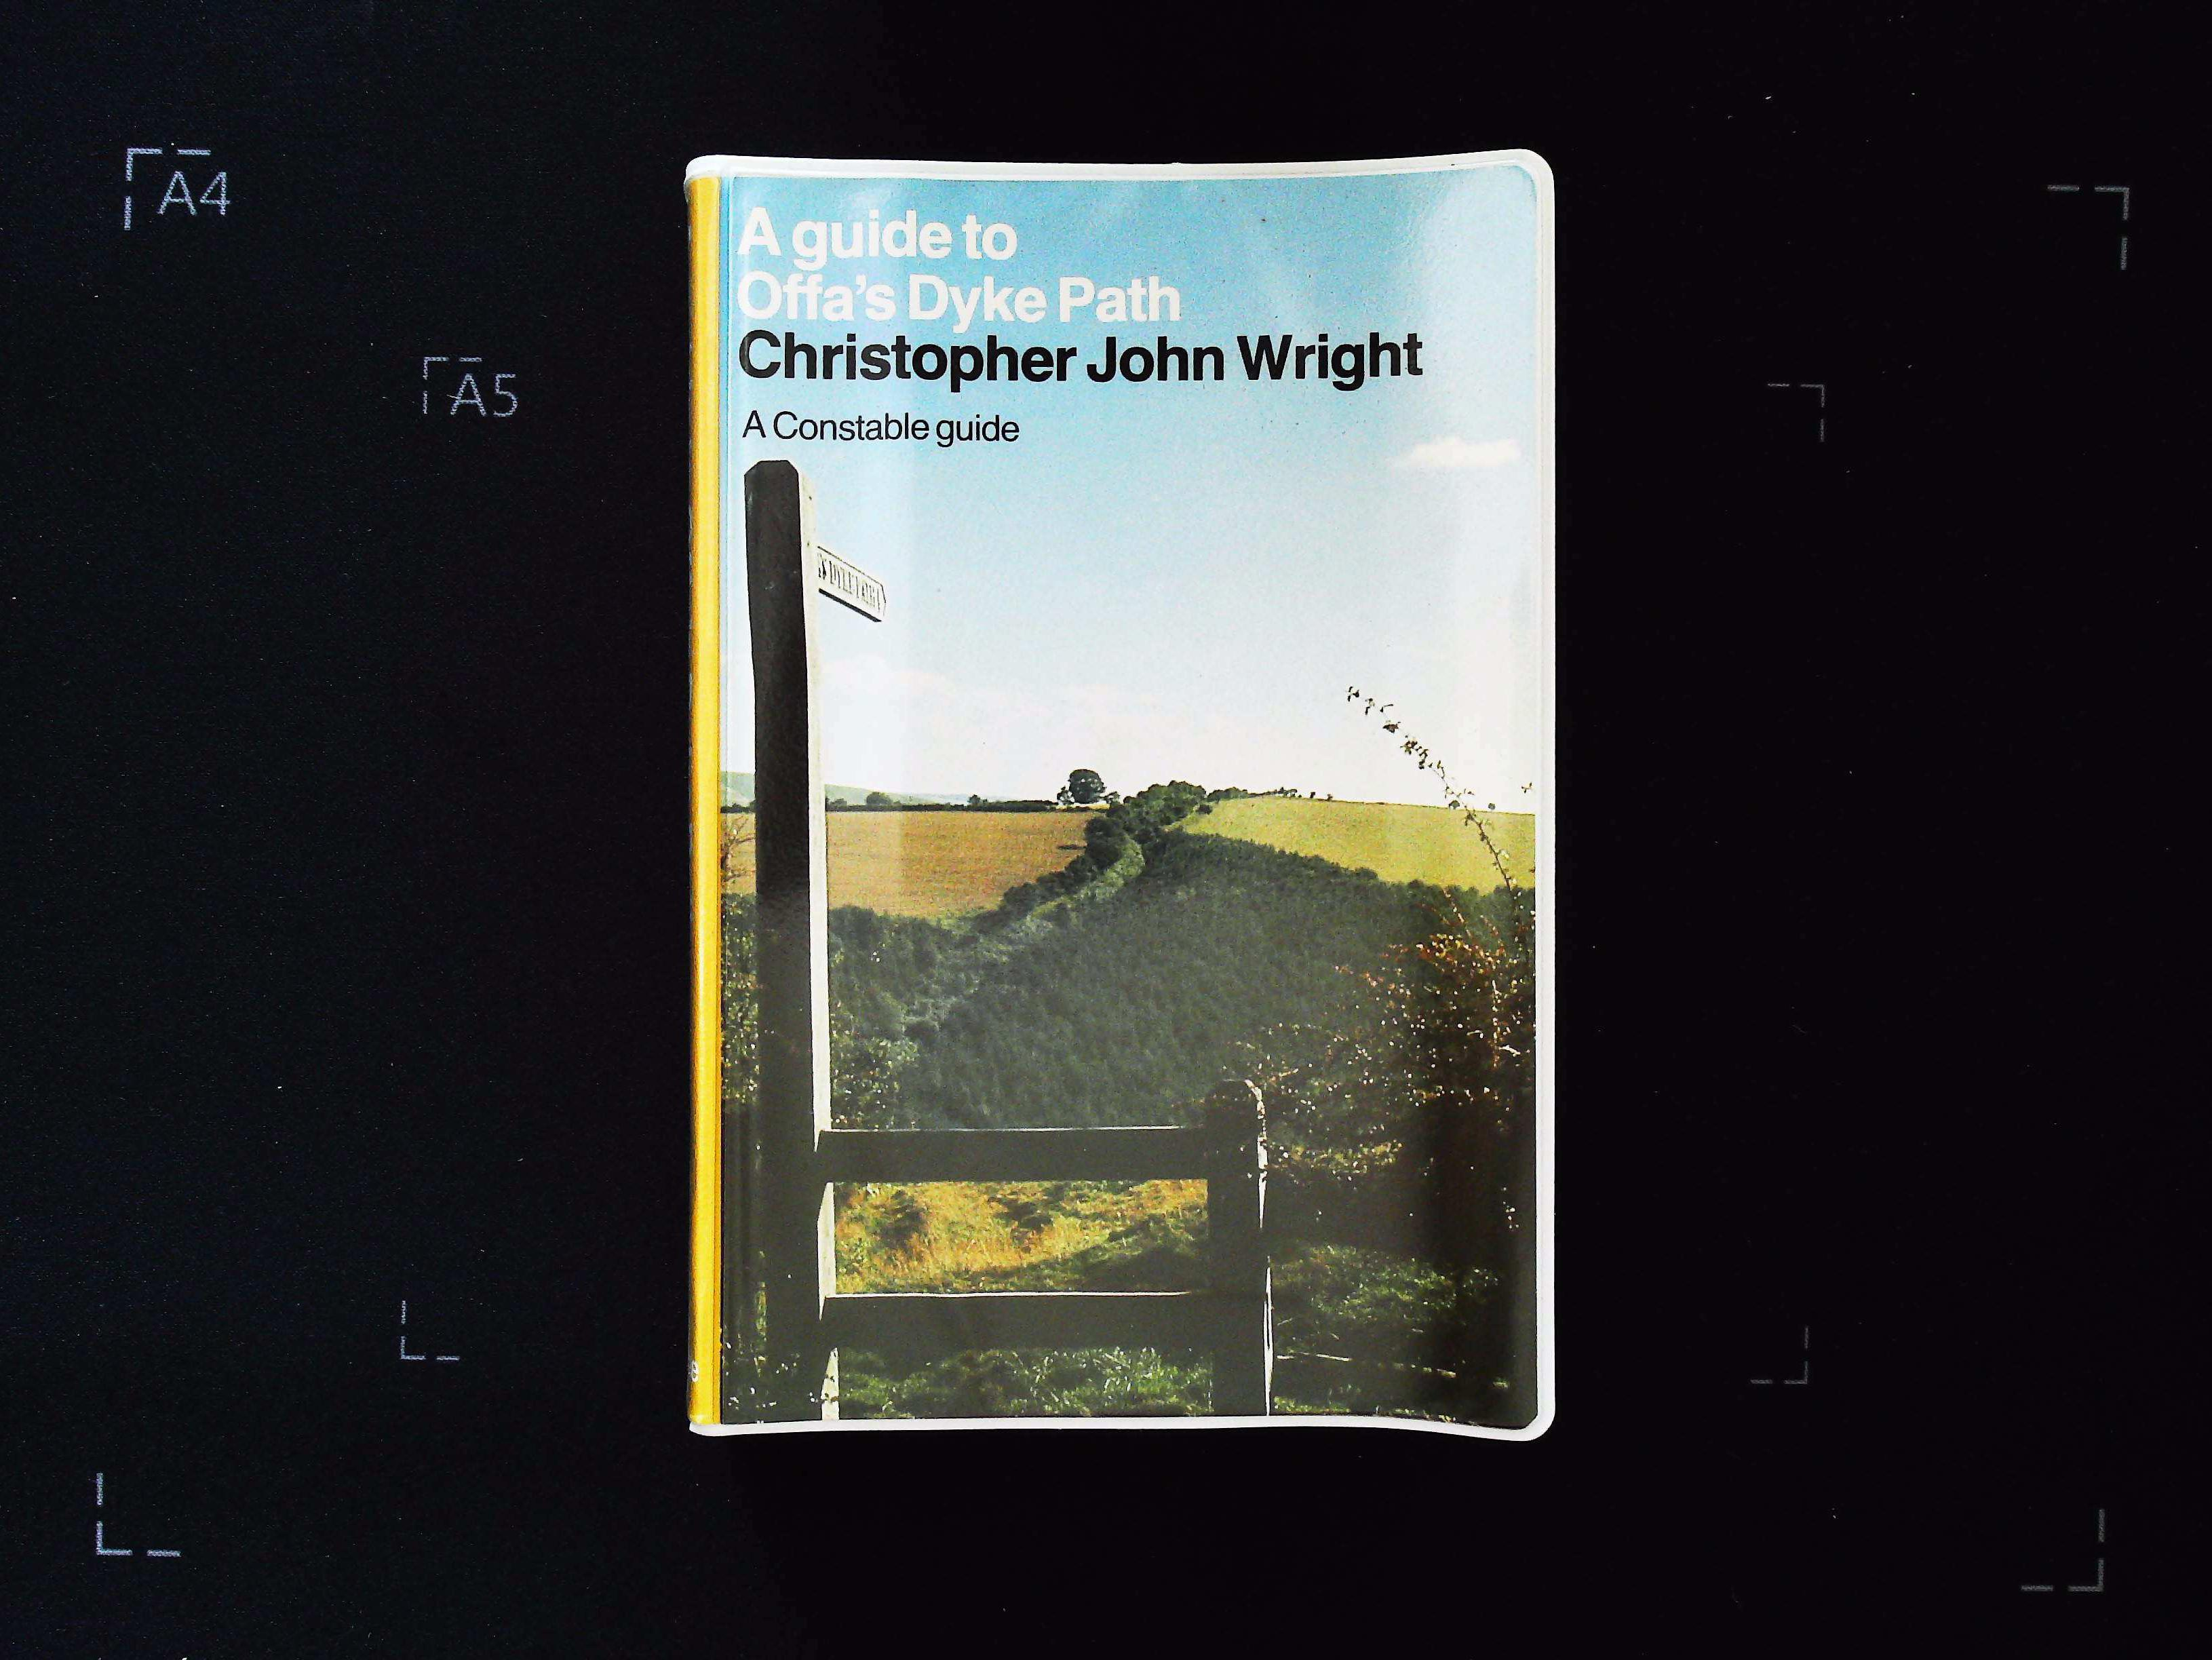 A Guide to Offa's Dyke Path by Christopher John Wright A Constable Guide softback book 352 pages